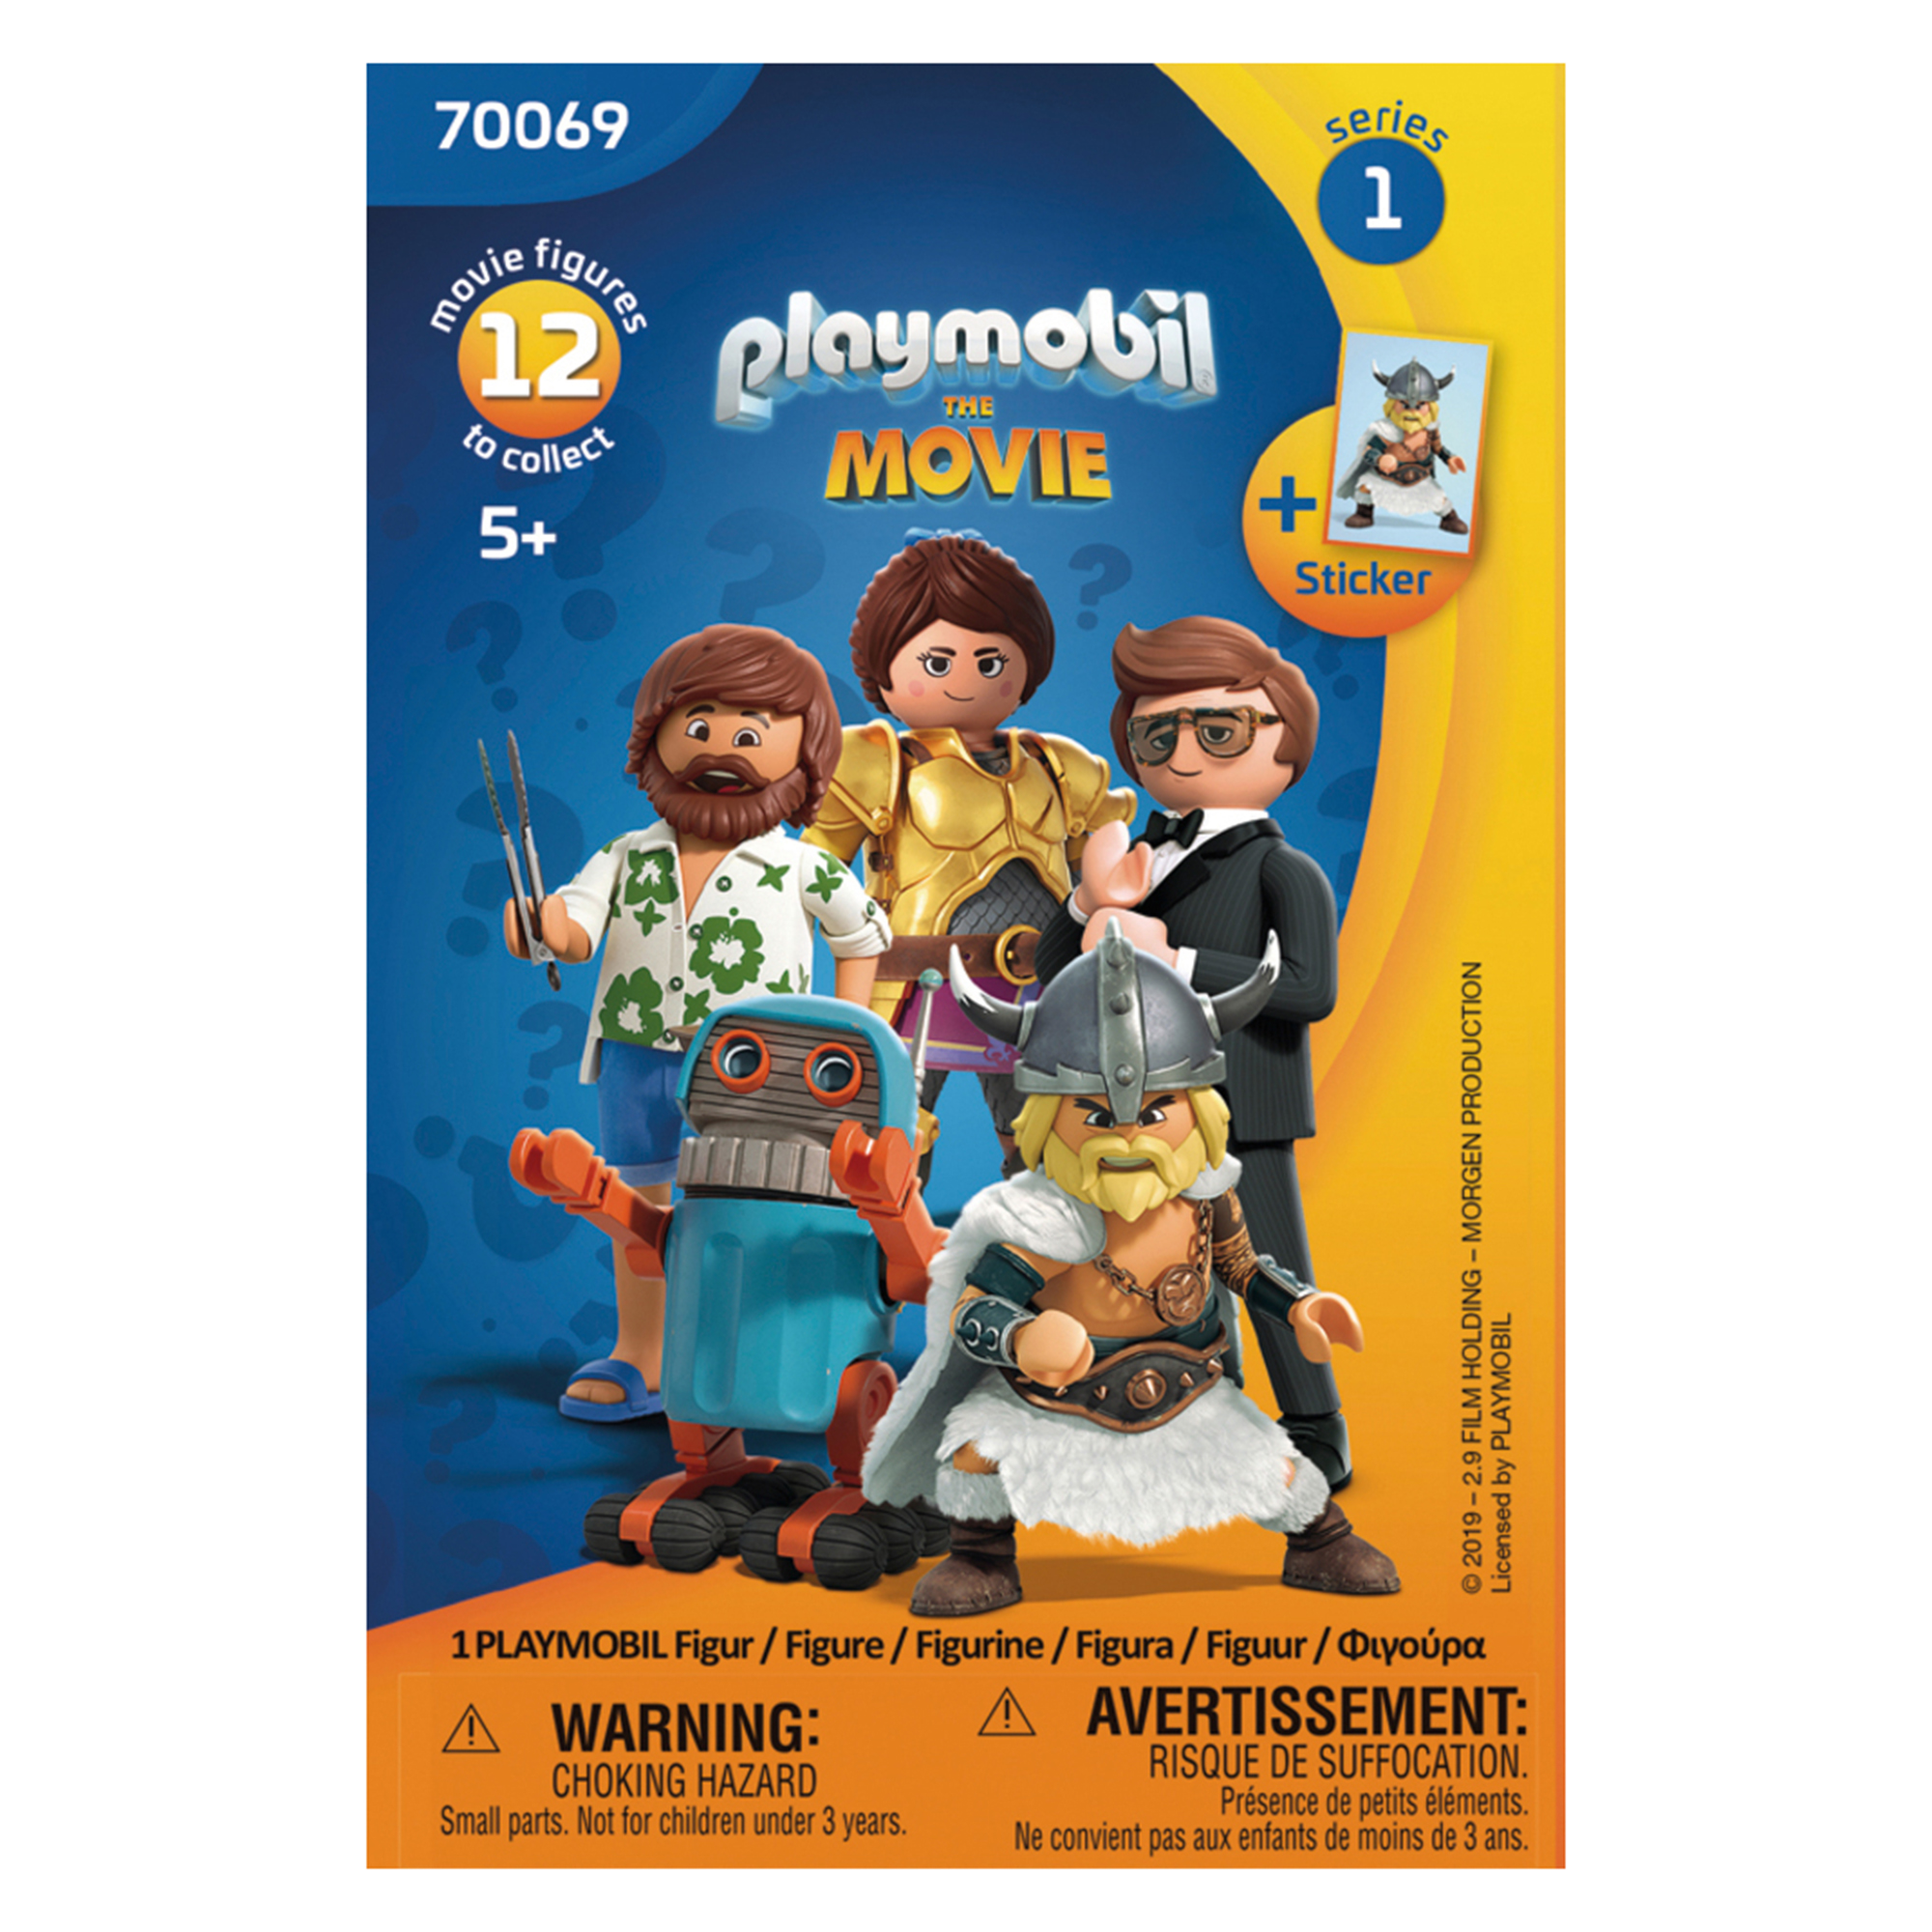 Playmobil 70069 Playmobil: THE MOVIE Figure Blind Bag Series 1 Assortment